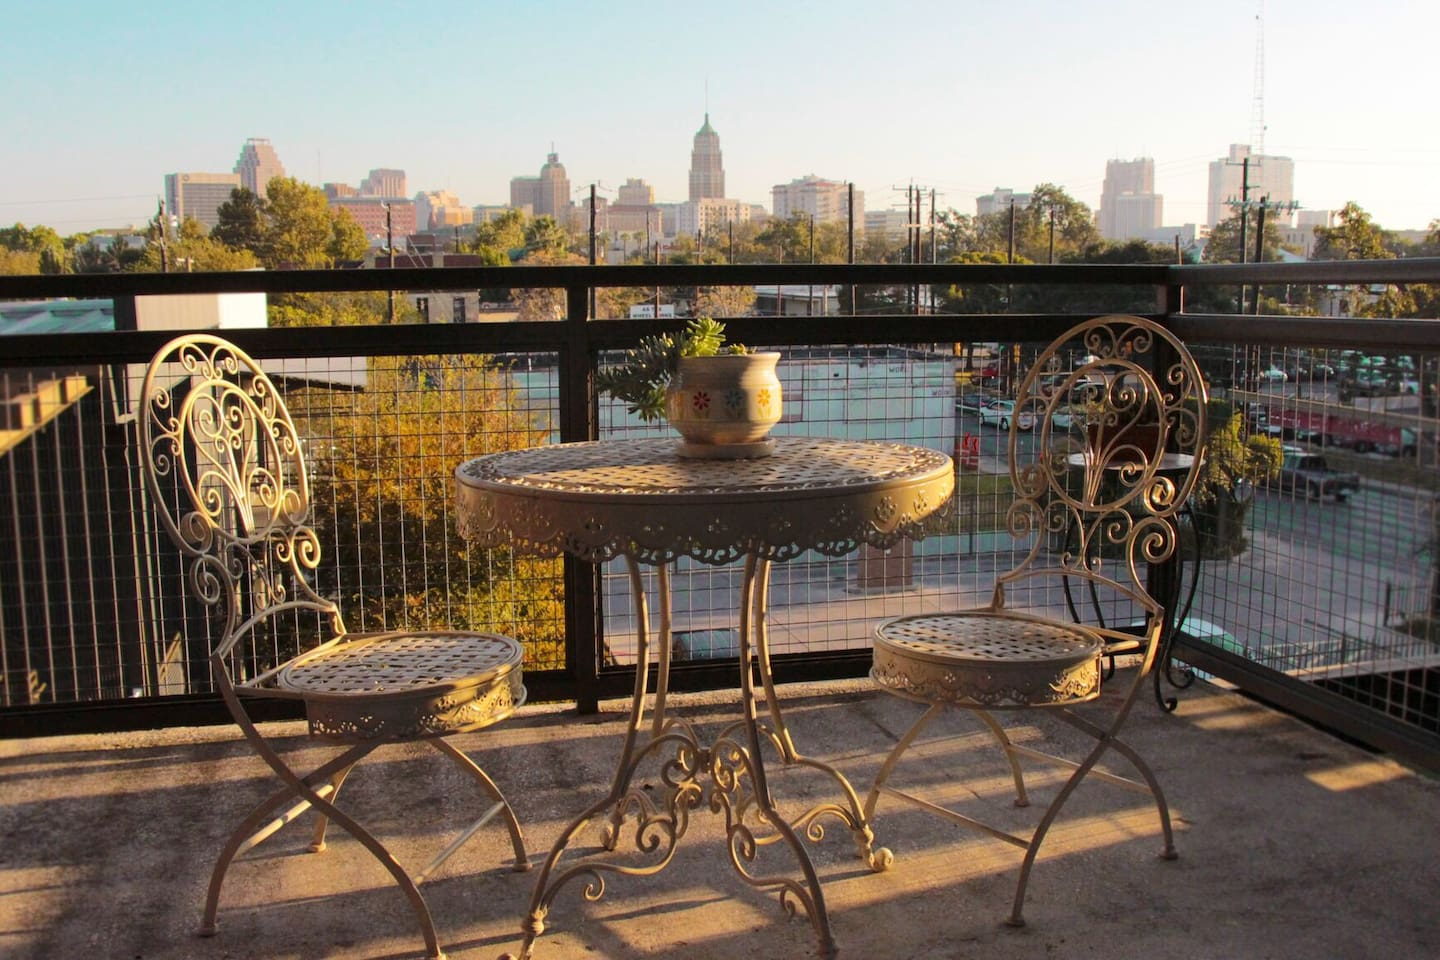 the patio overlooking downtown Alamo City